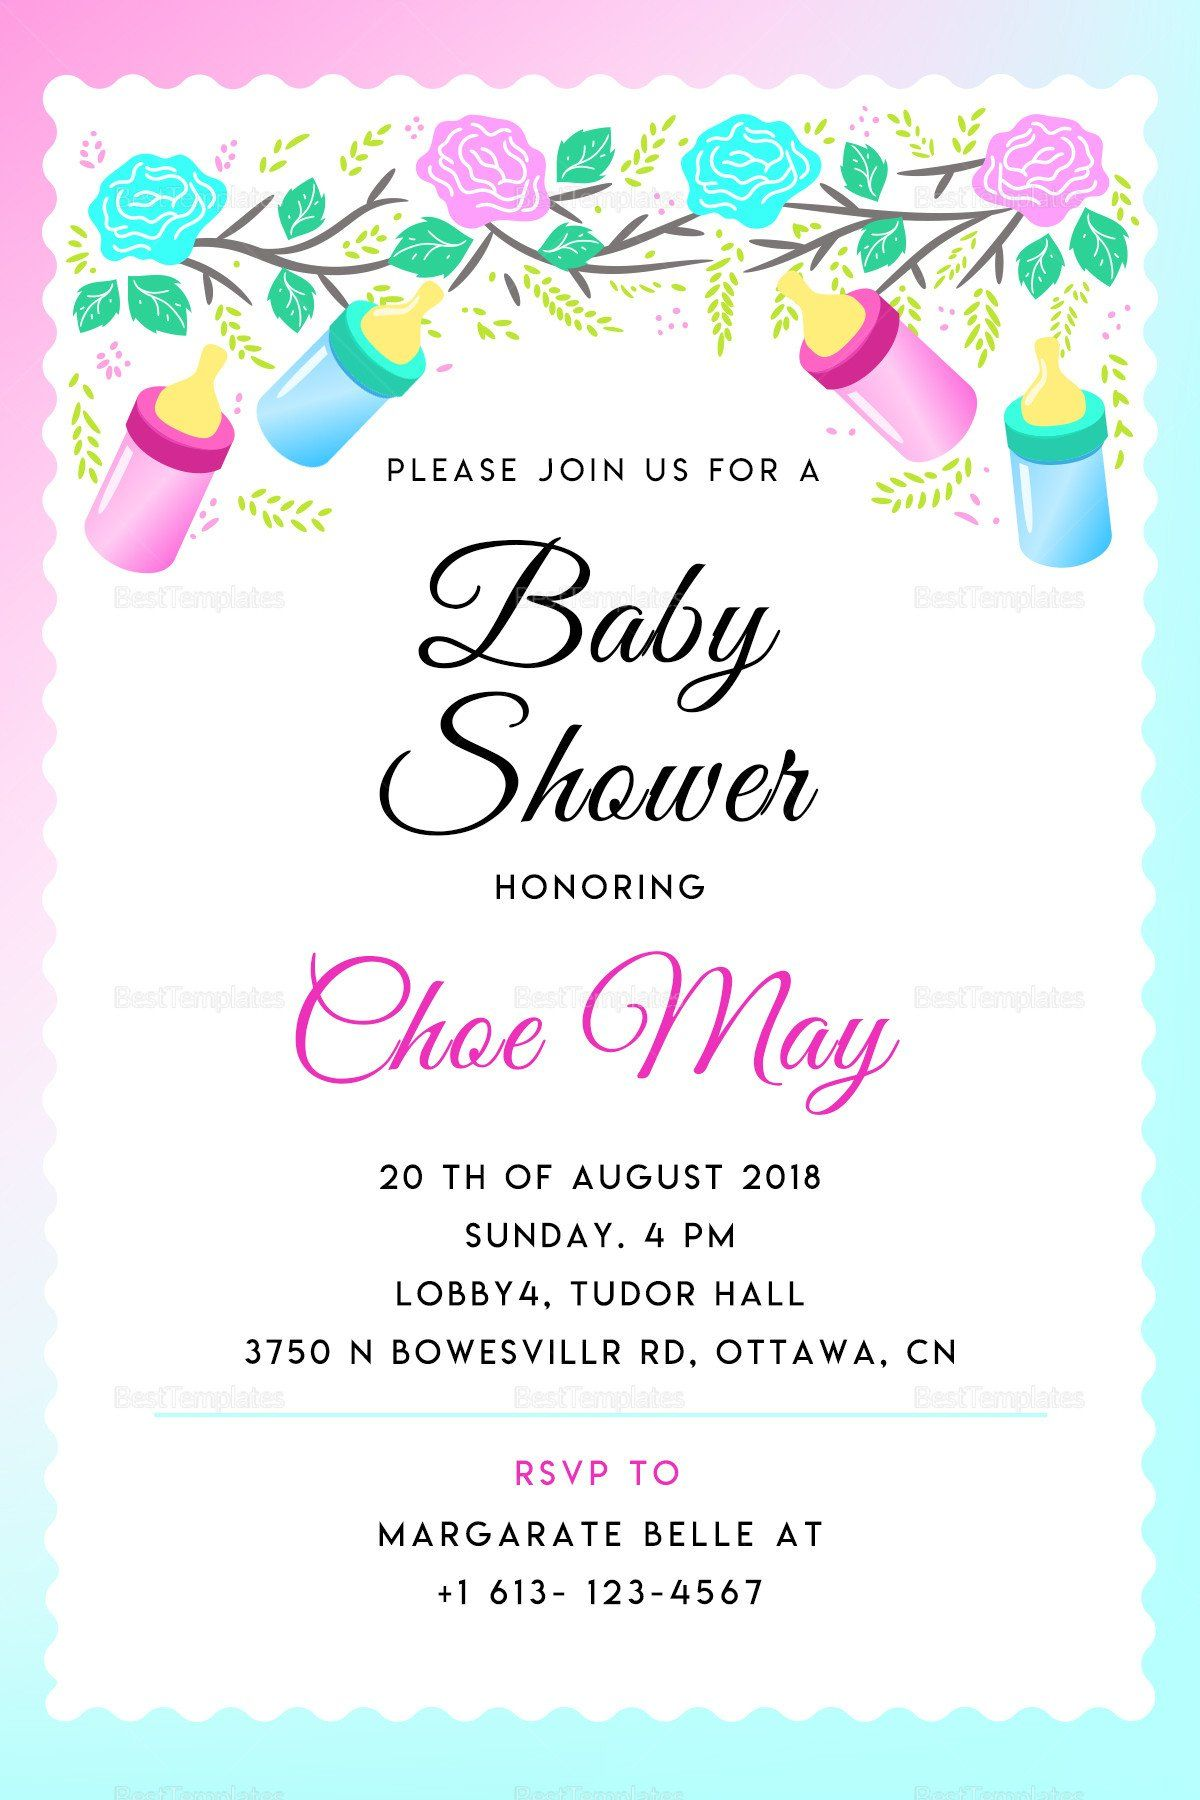 Baby Shower Invitations Templates Editable Editable Baby Shower Invi Free Baby Shower Invitations Baby Shower Invitation Templates Baby Shower Invitation Cards